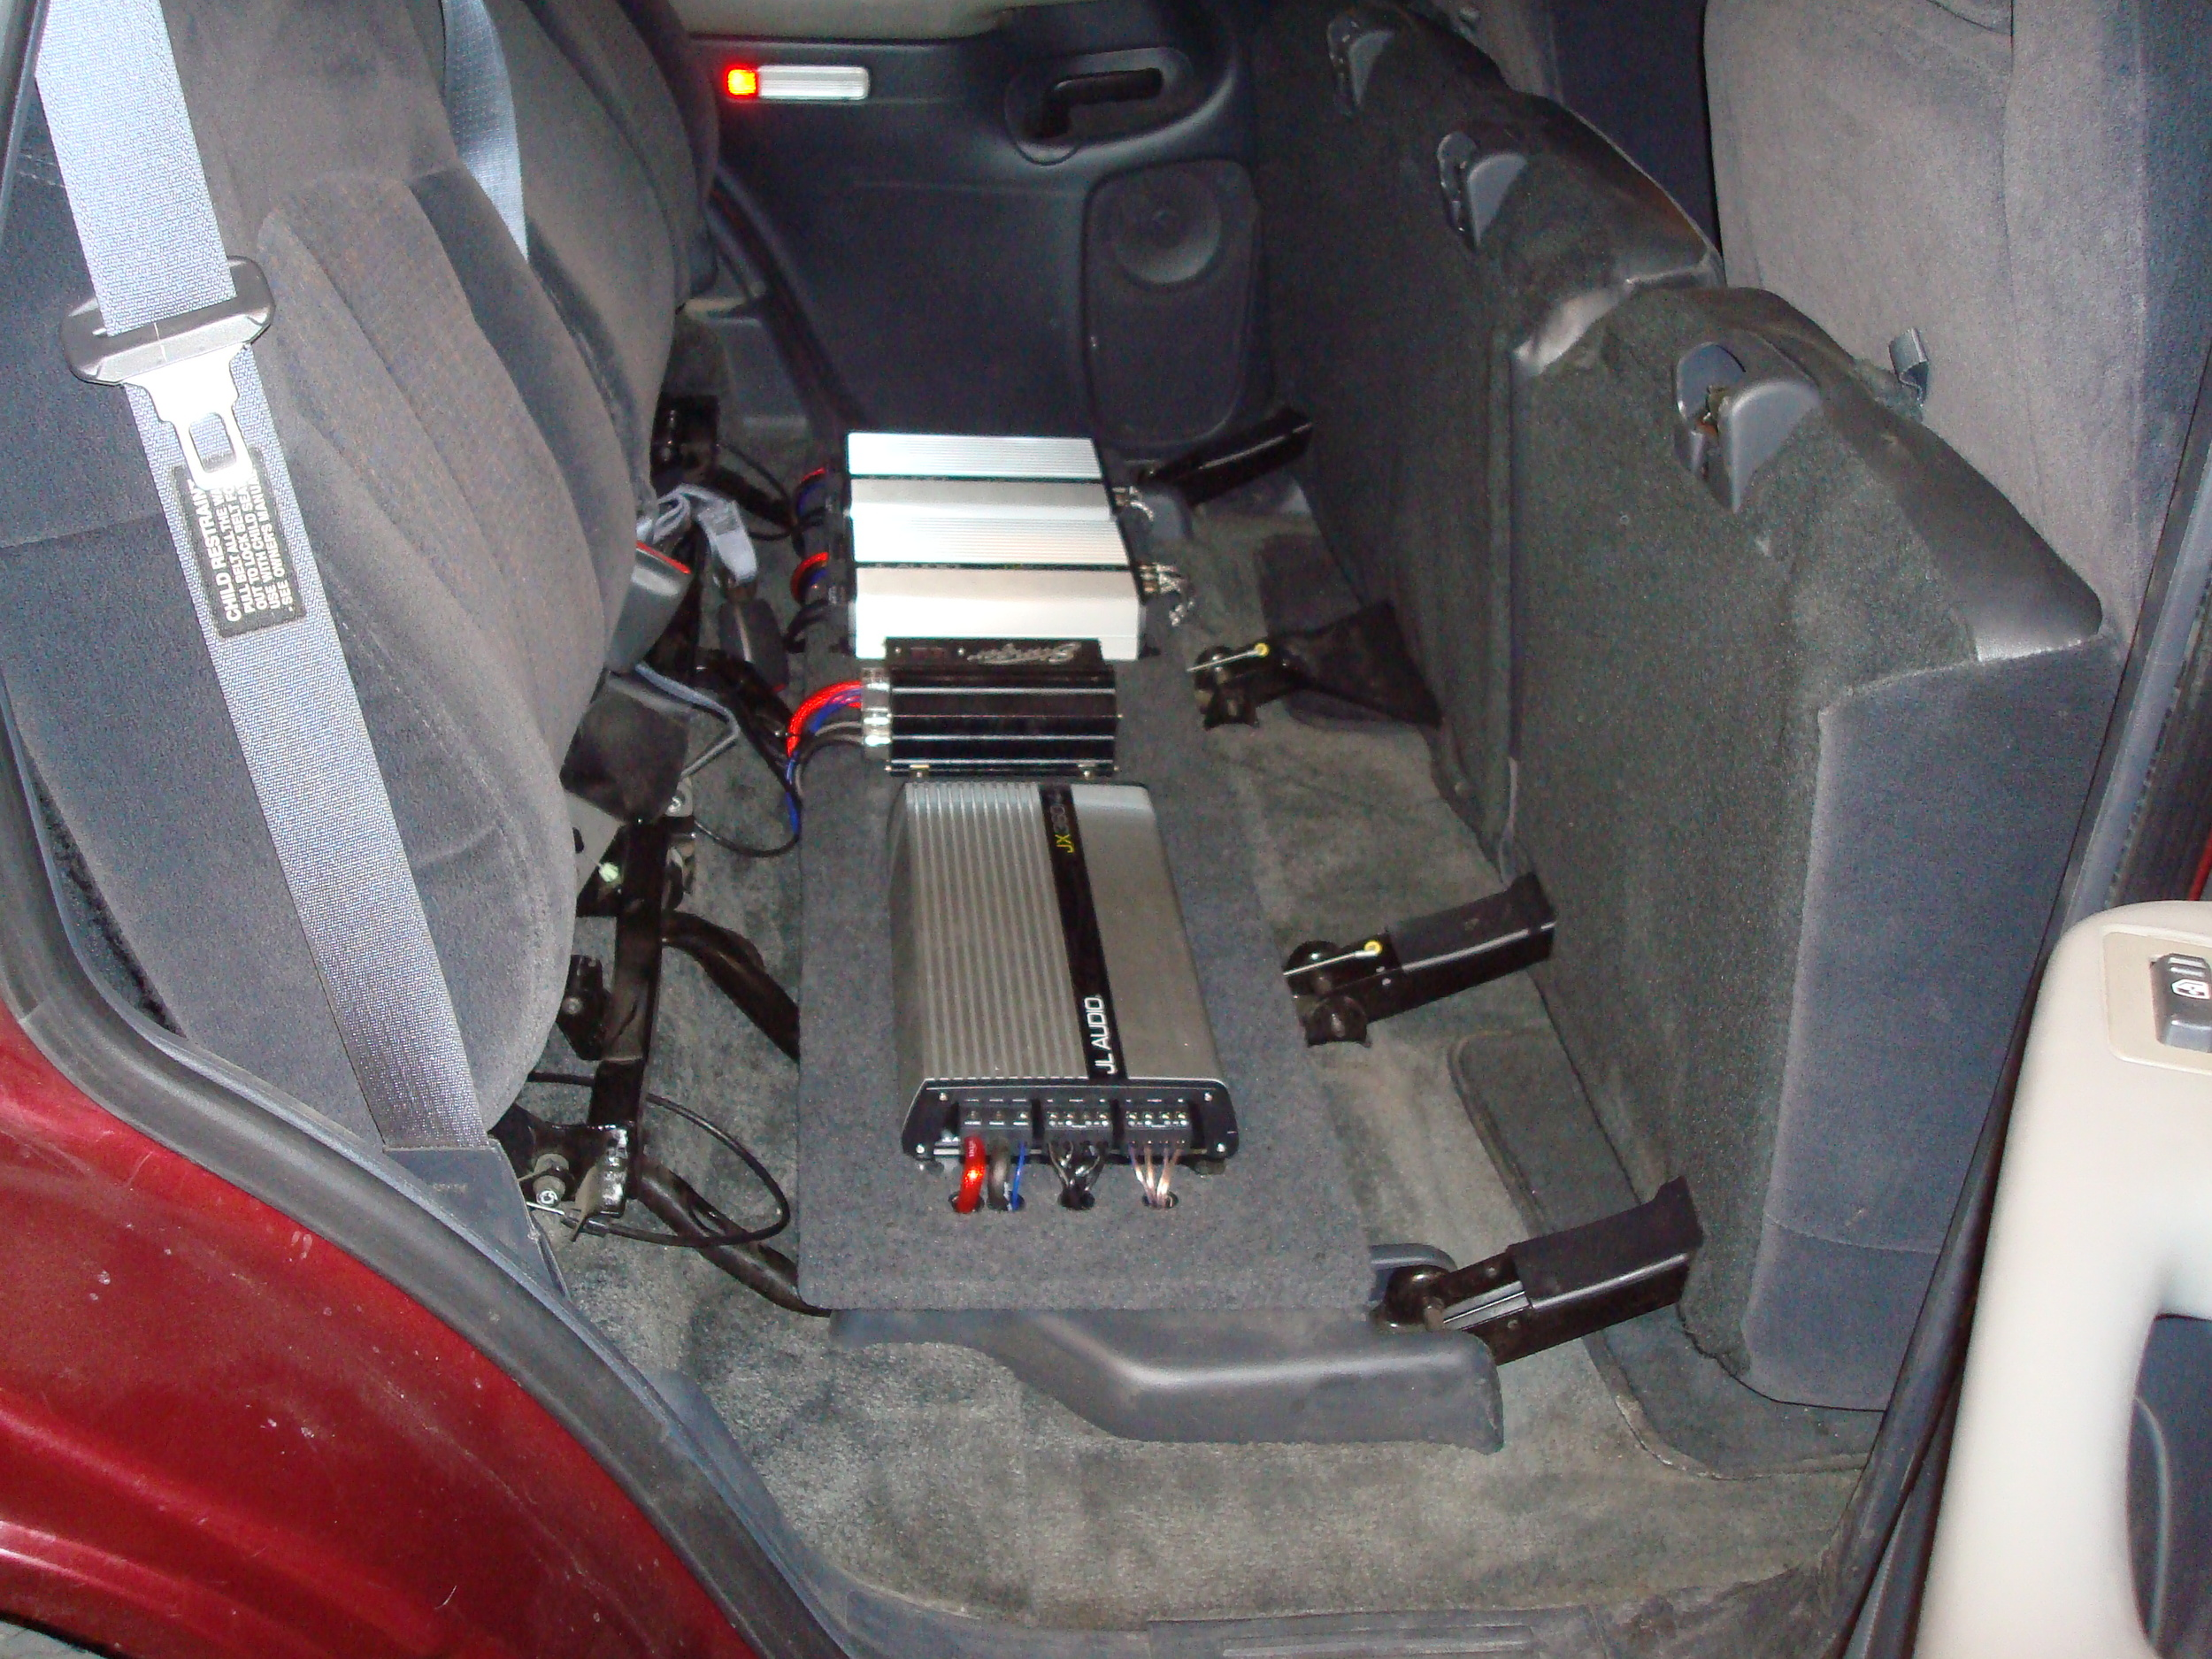 2001 Tahoe - Amp rack under the seat